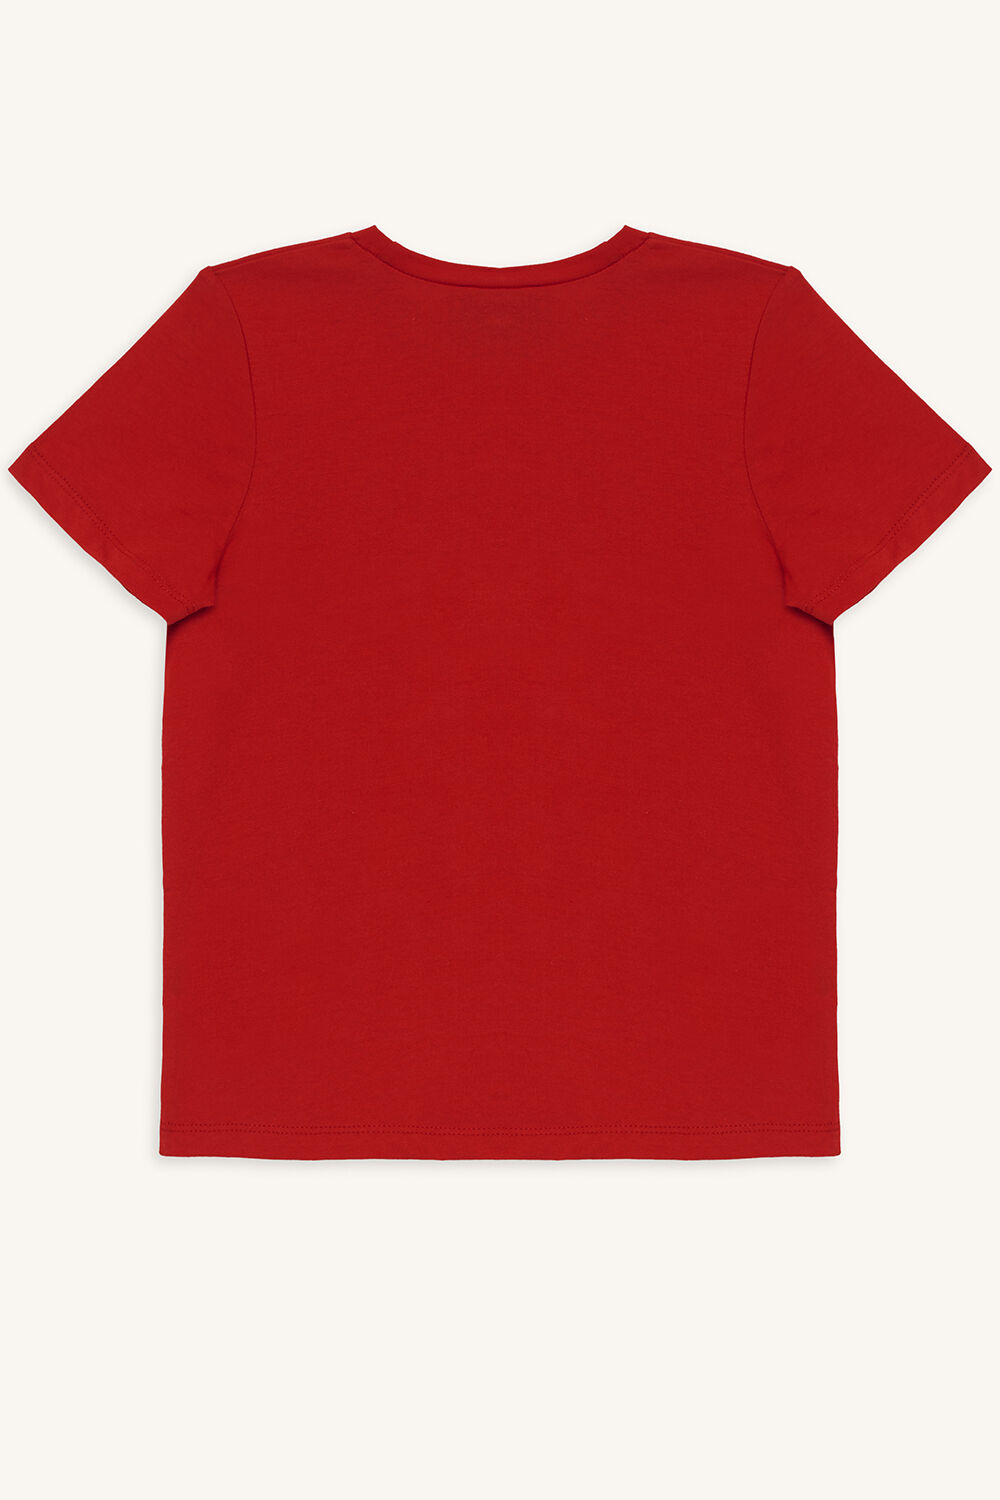 ST TROPEZ TEE in colour FORMULA ONE